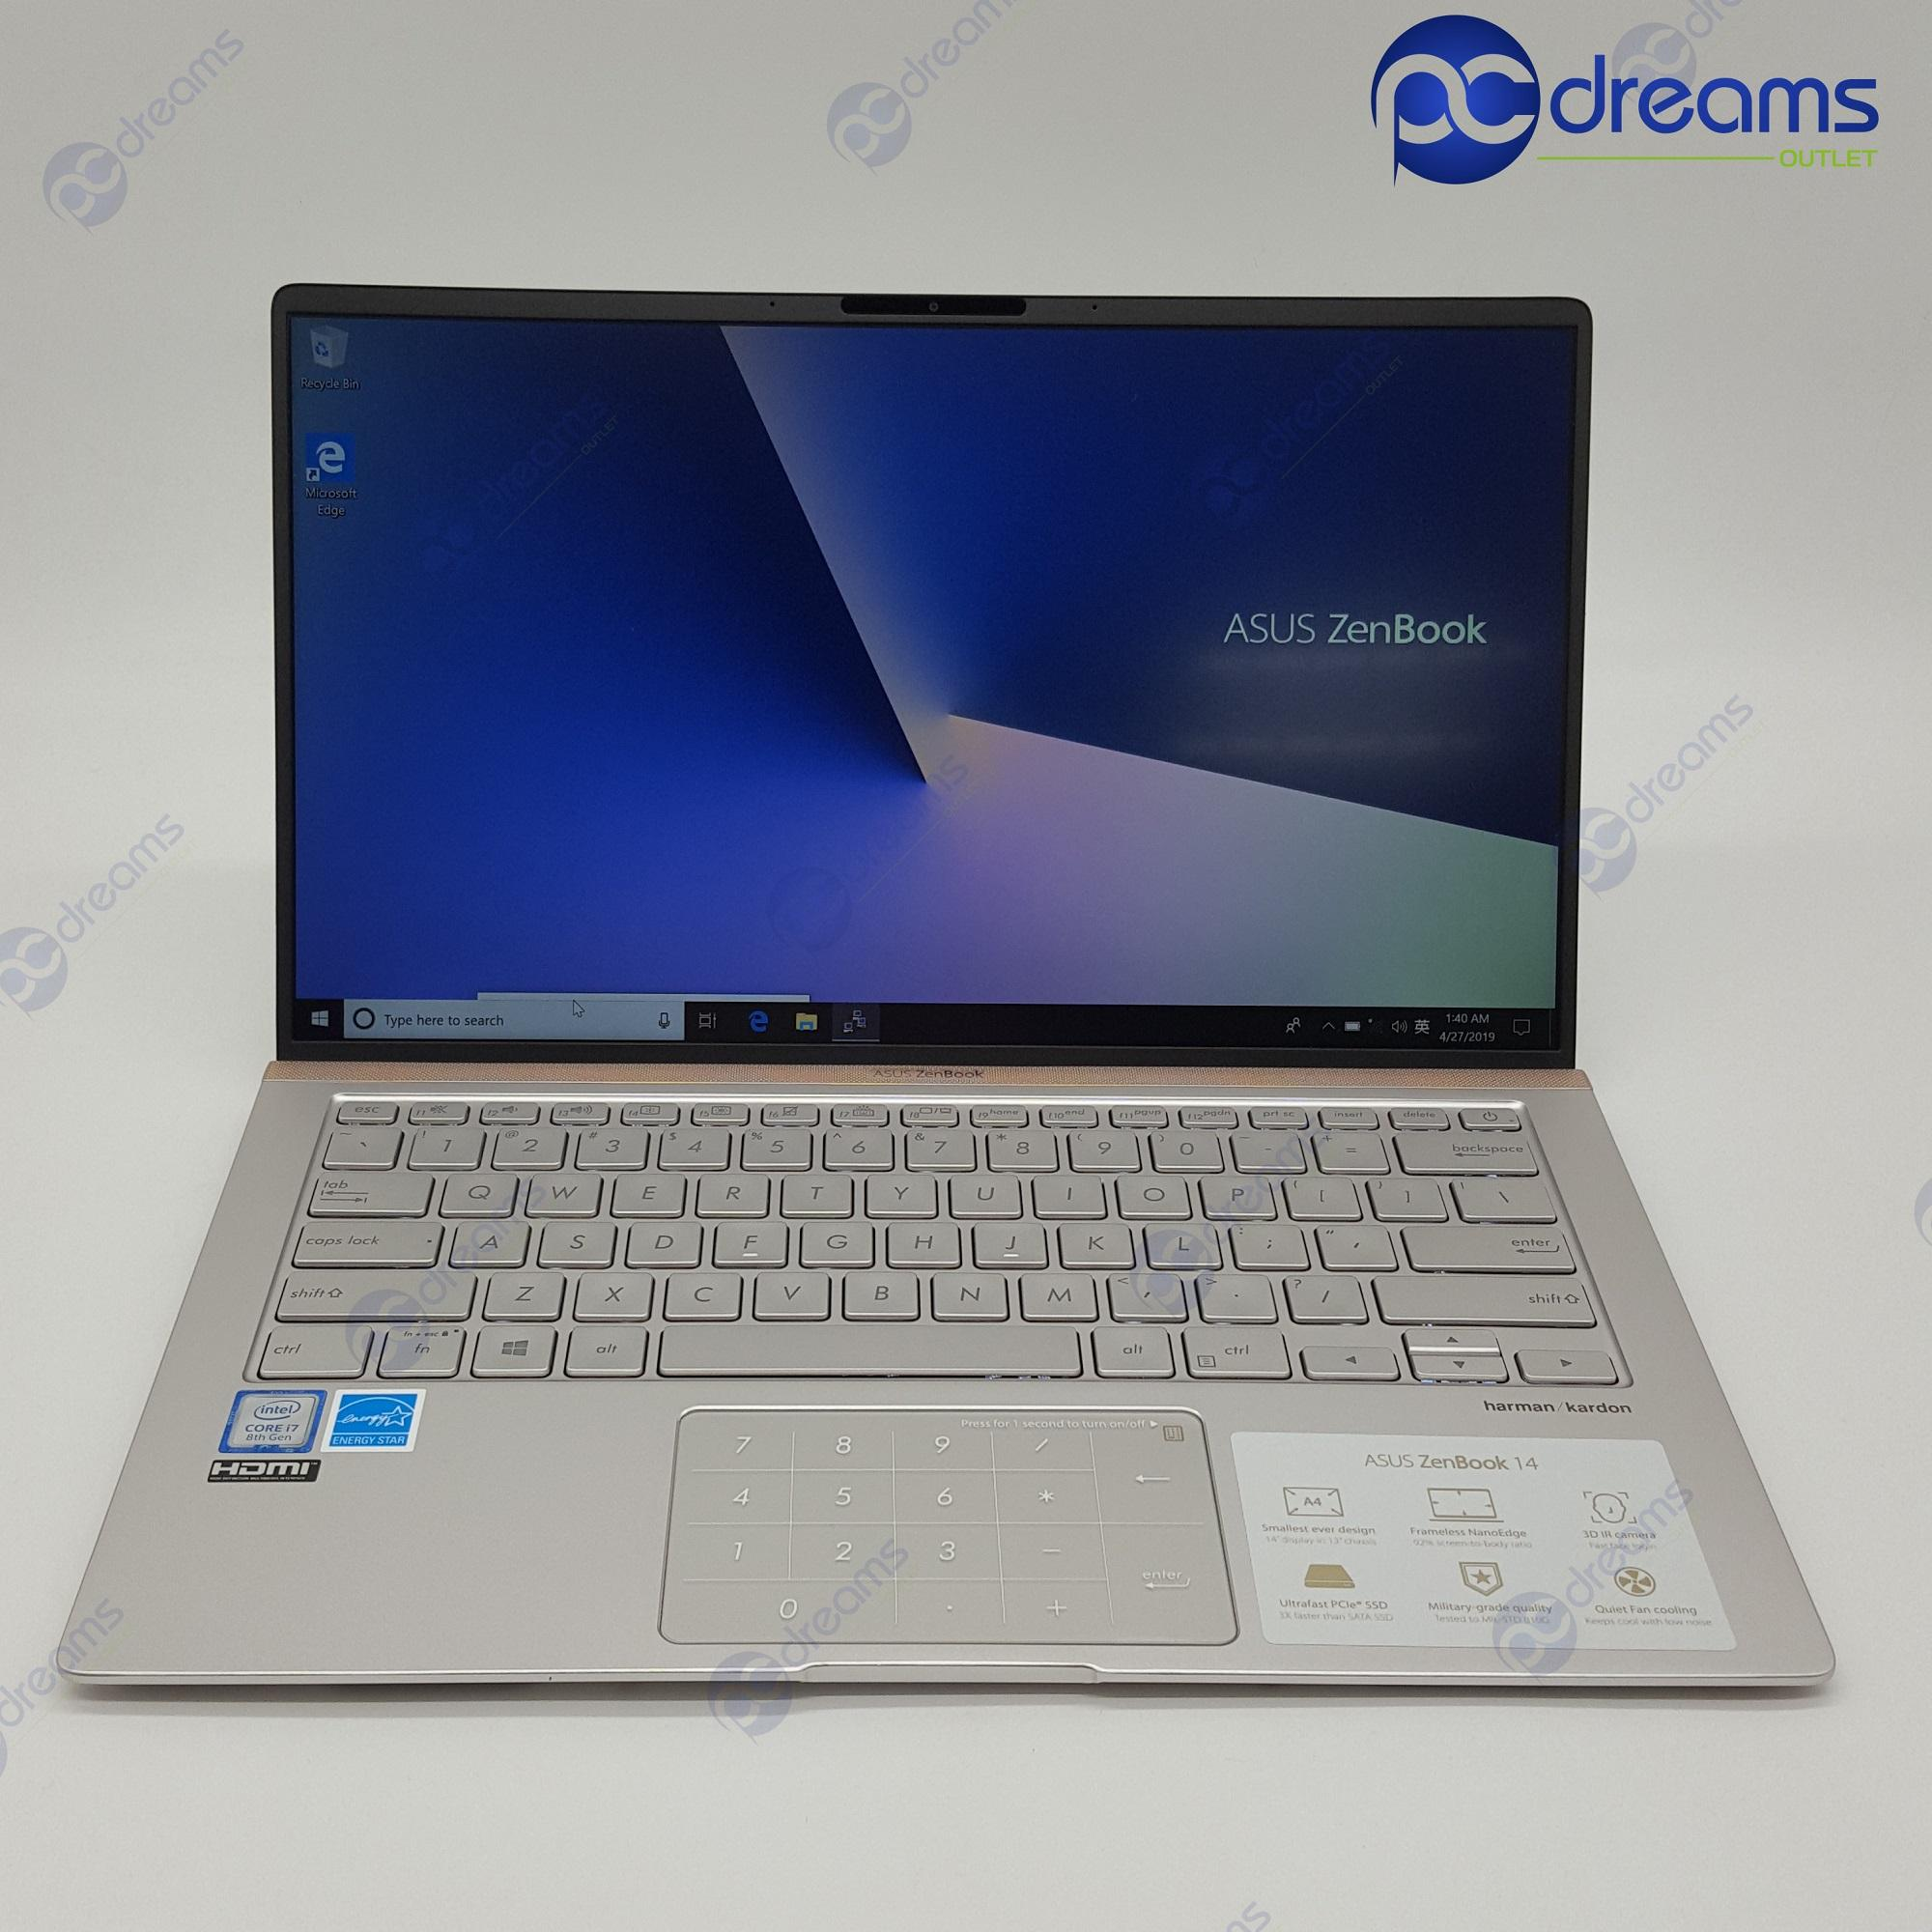 ASUS ZENBOOK UX433FA-A5130T i7-8565U/8GB/256GB PCIe SSD [New Reconditioned]